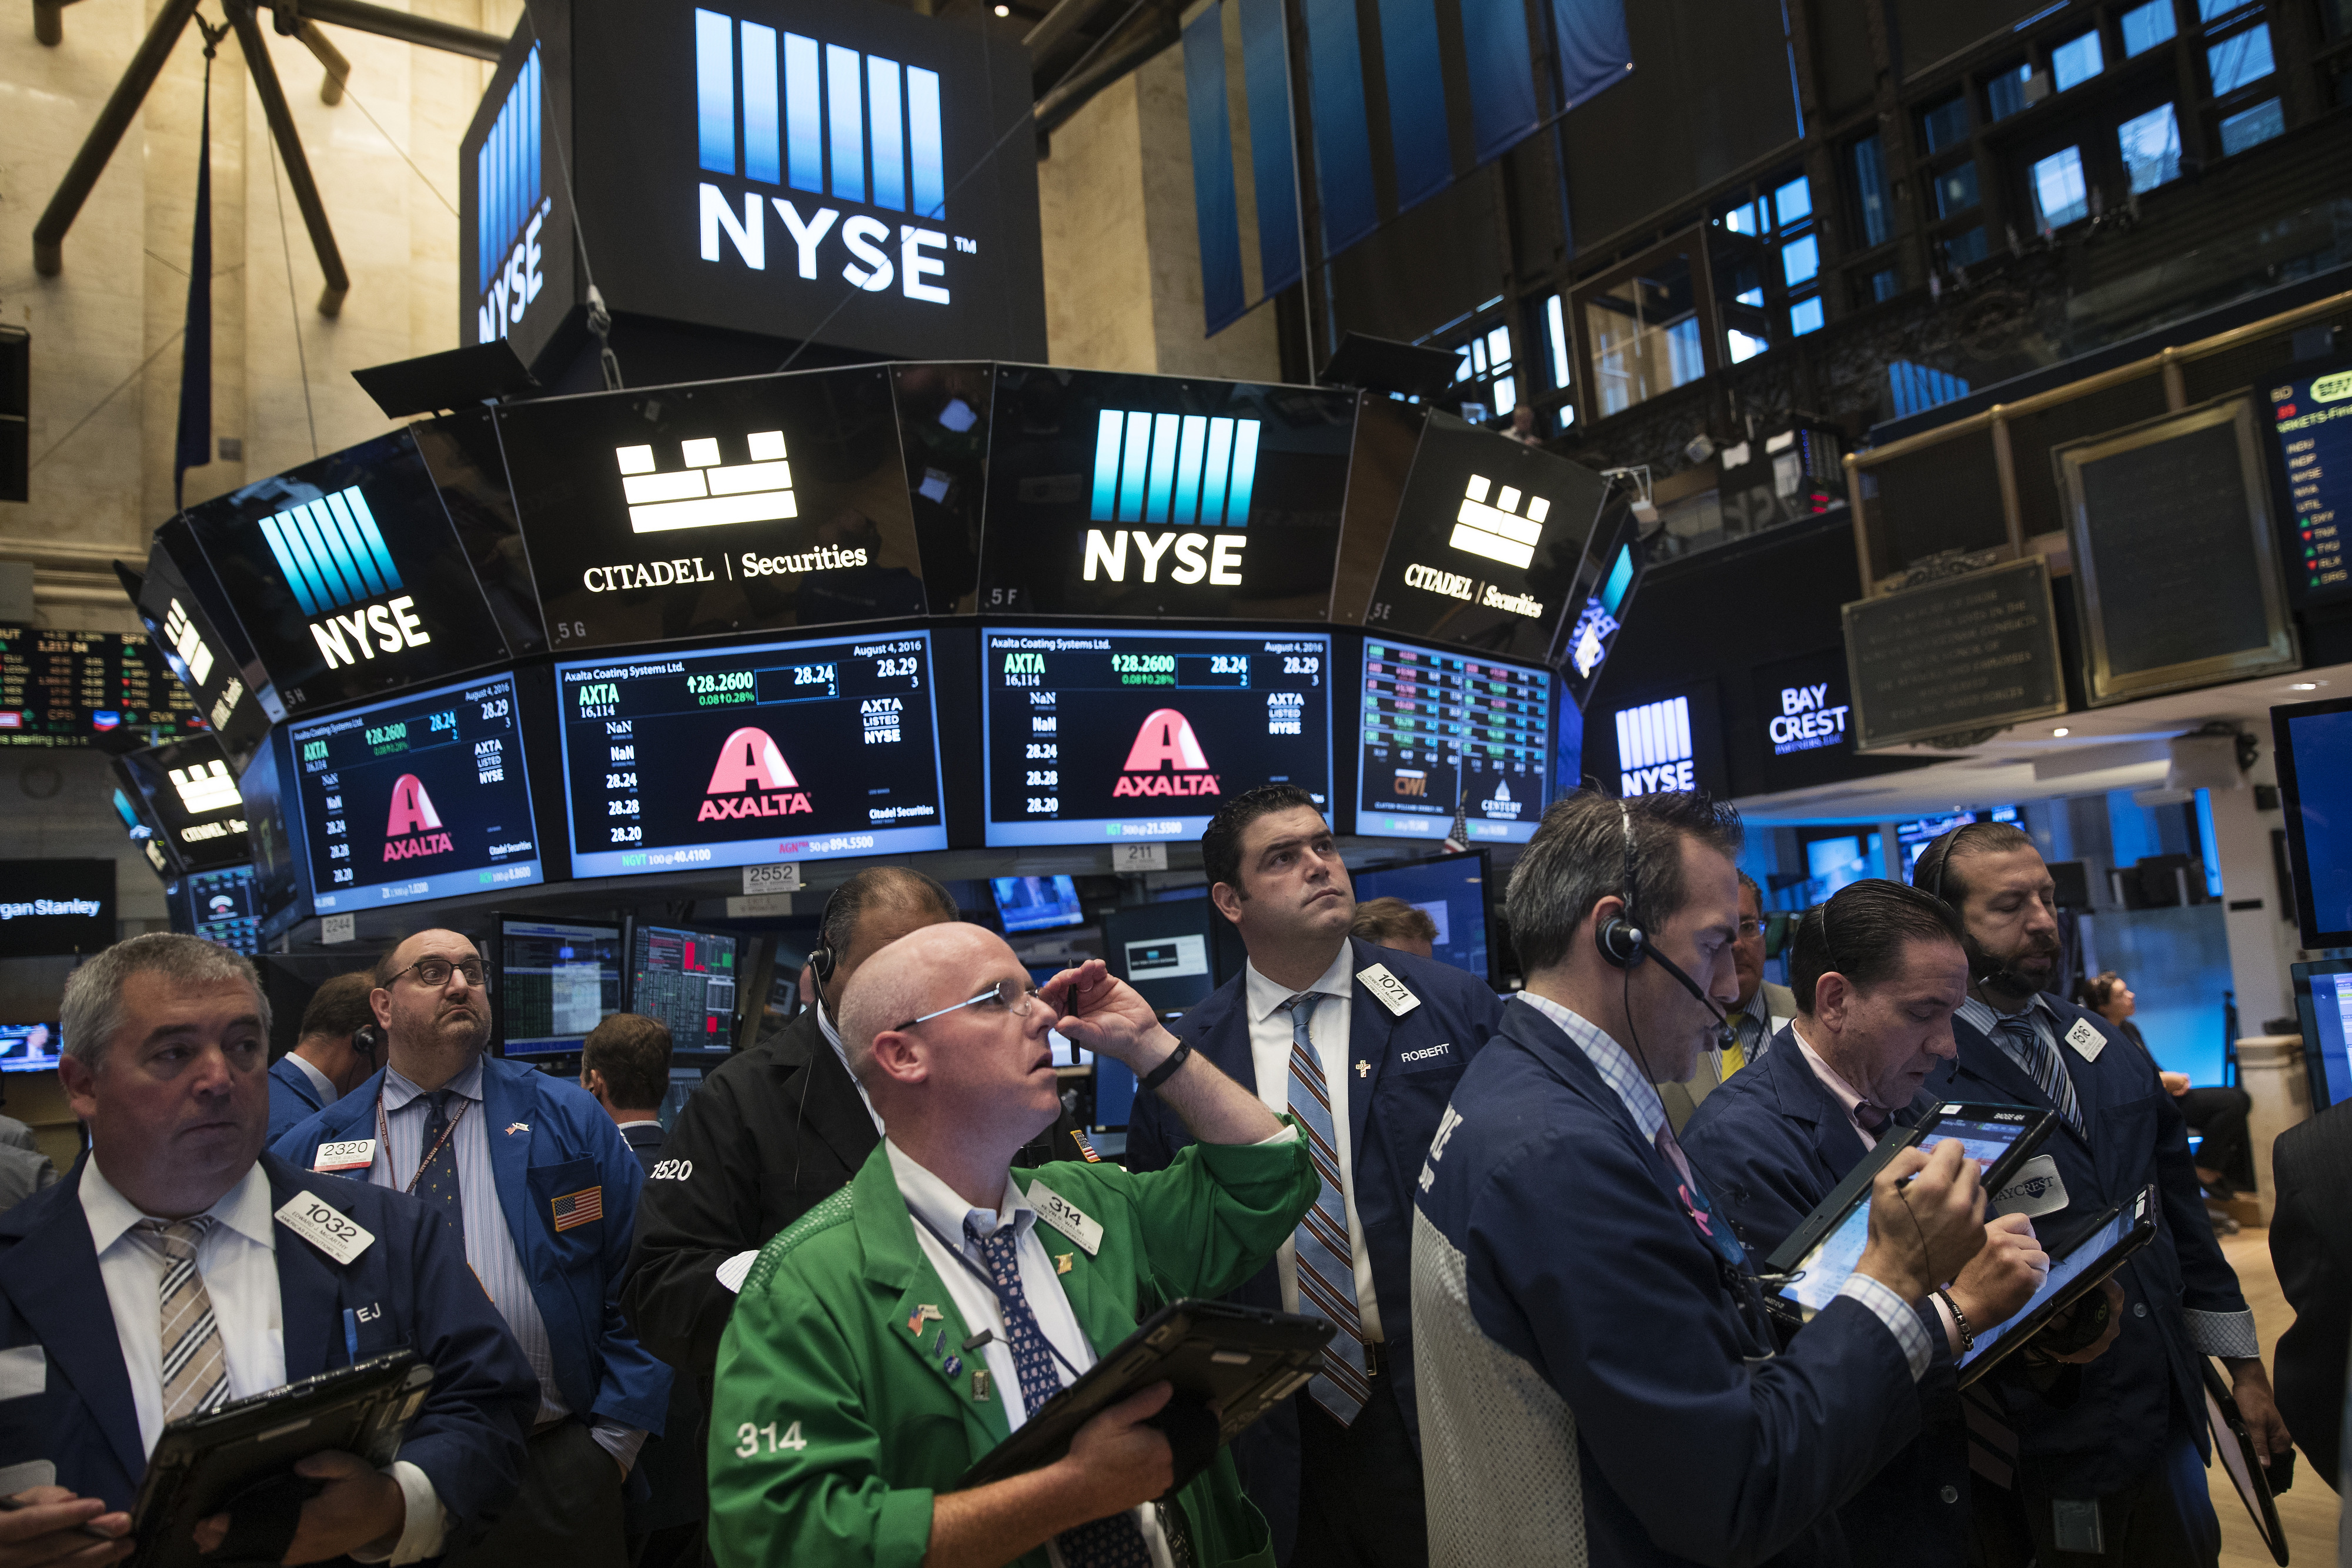 Trading On The Floor Of The NYSE As U.S. Stocks Fluctuate While Investors Turn Focus Toward Jobs Data